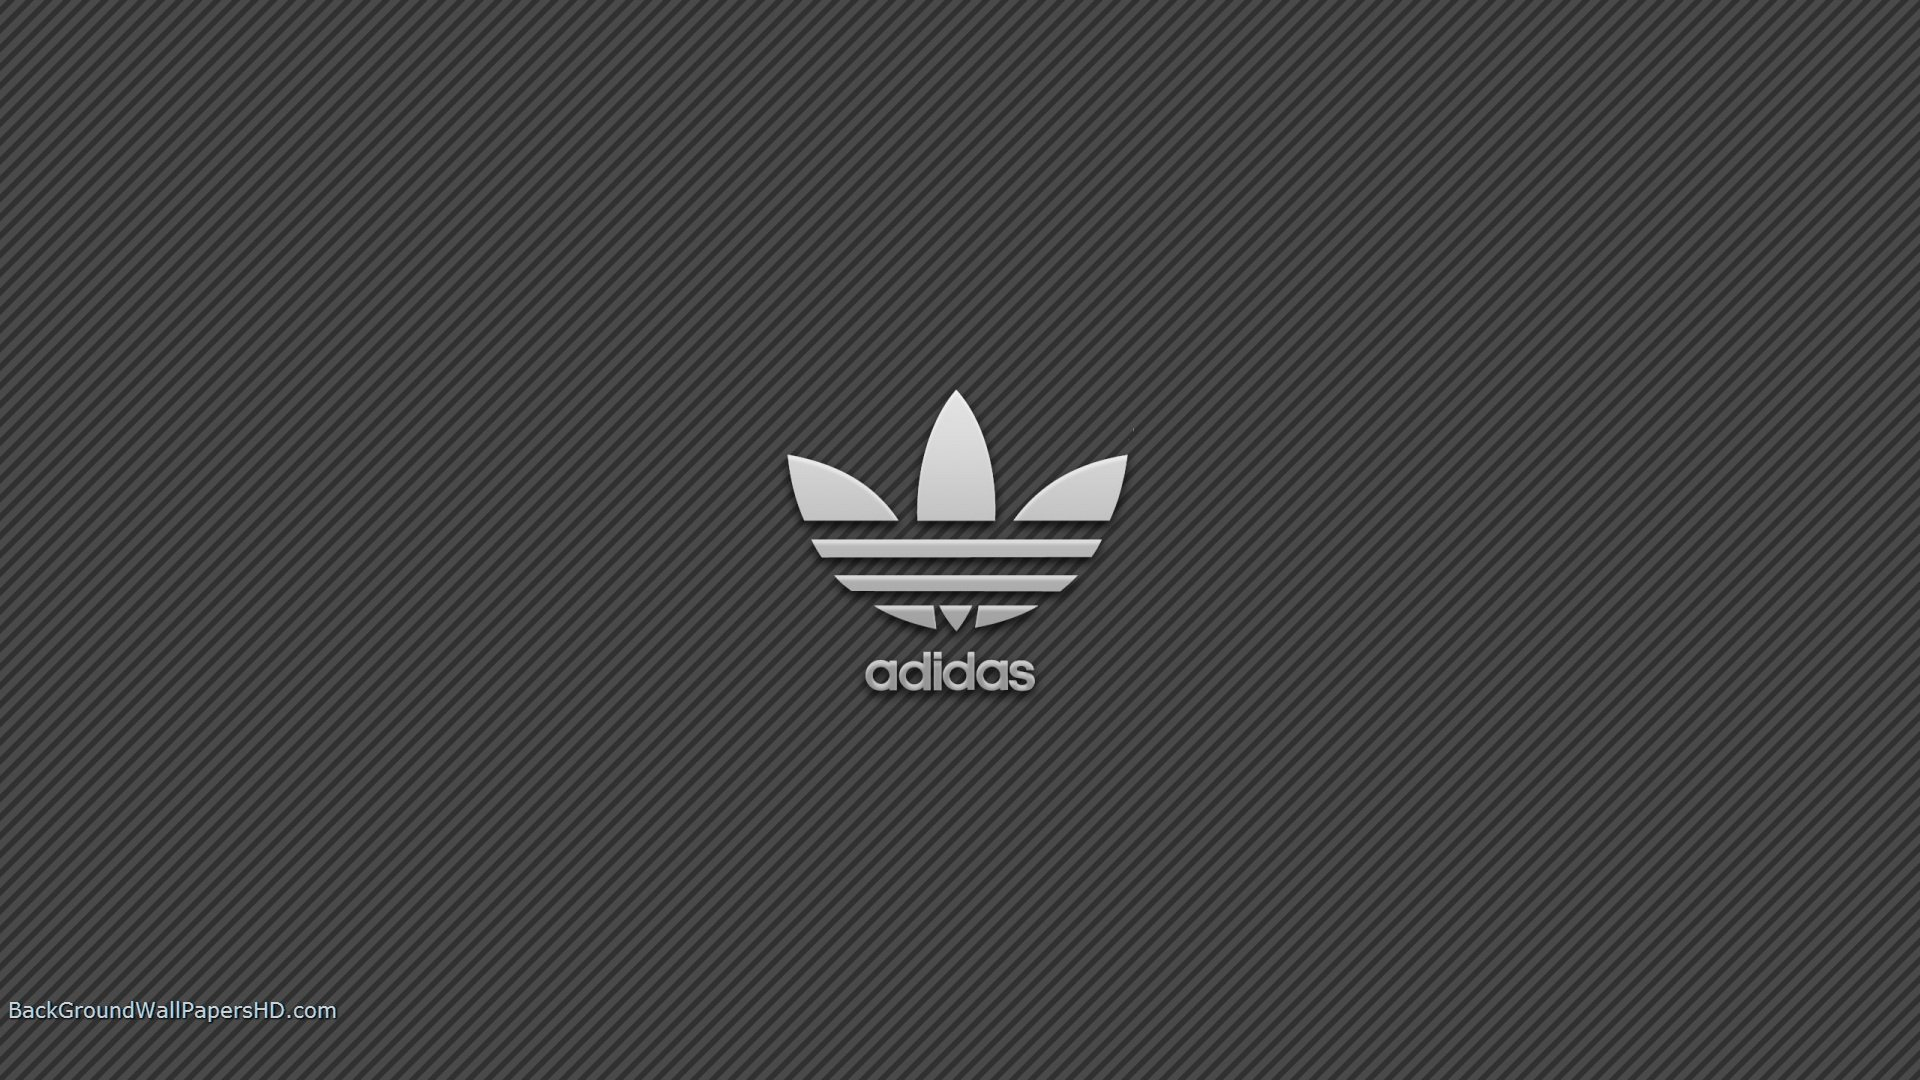 Related Pictures adidas wallpaper adidas desktop background 1920x1080